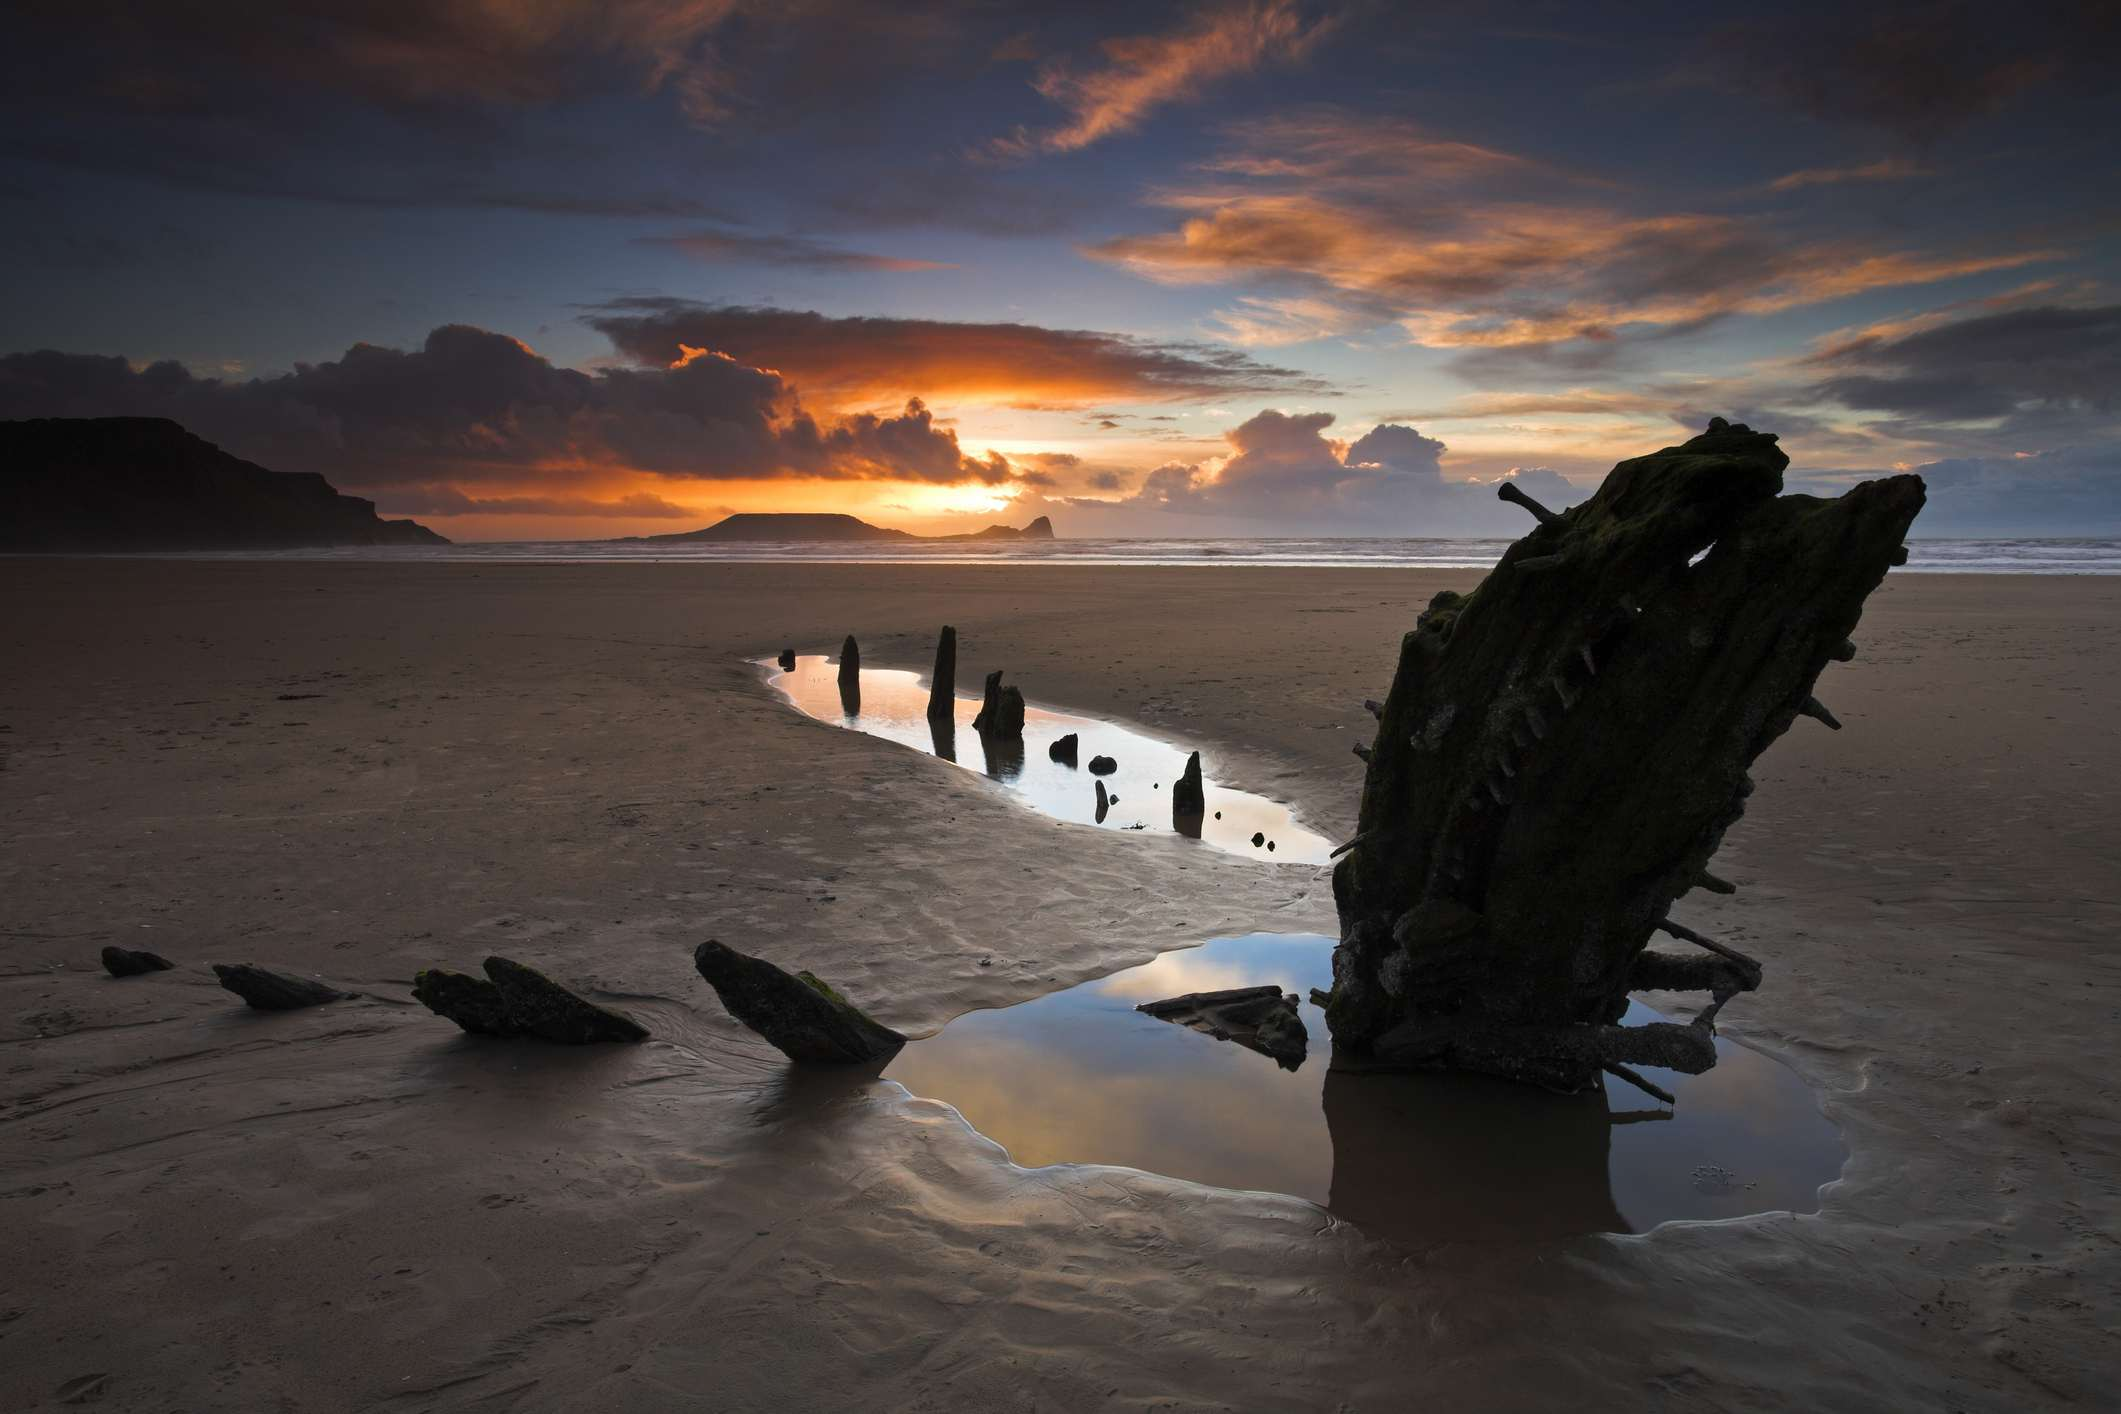 Beachside at Rhossili Bay with the wreck of the Helvetia buried in the sand, and Worm's Head on the horizon, Gower Peninsula, near Swansea, Wales, United Kingdom, Europe